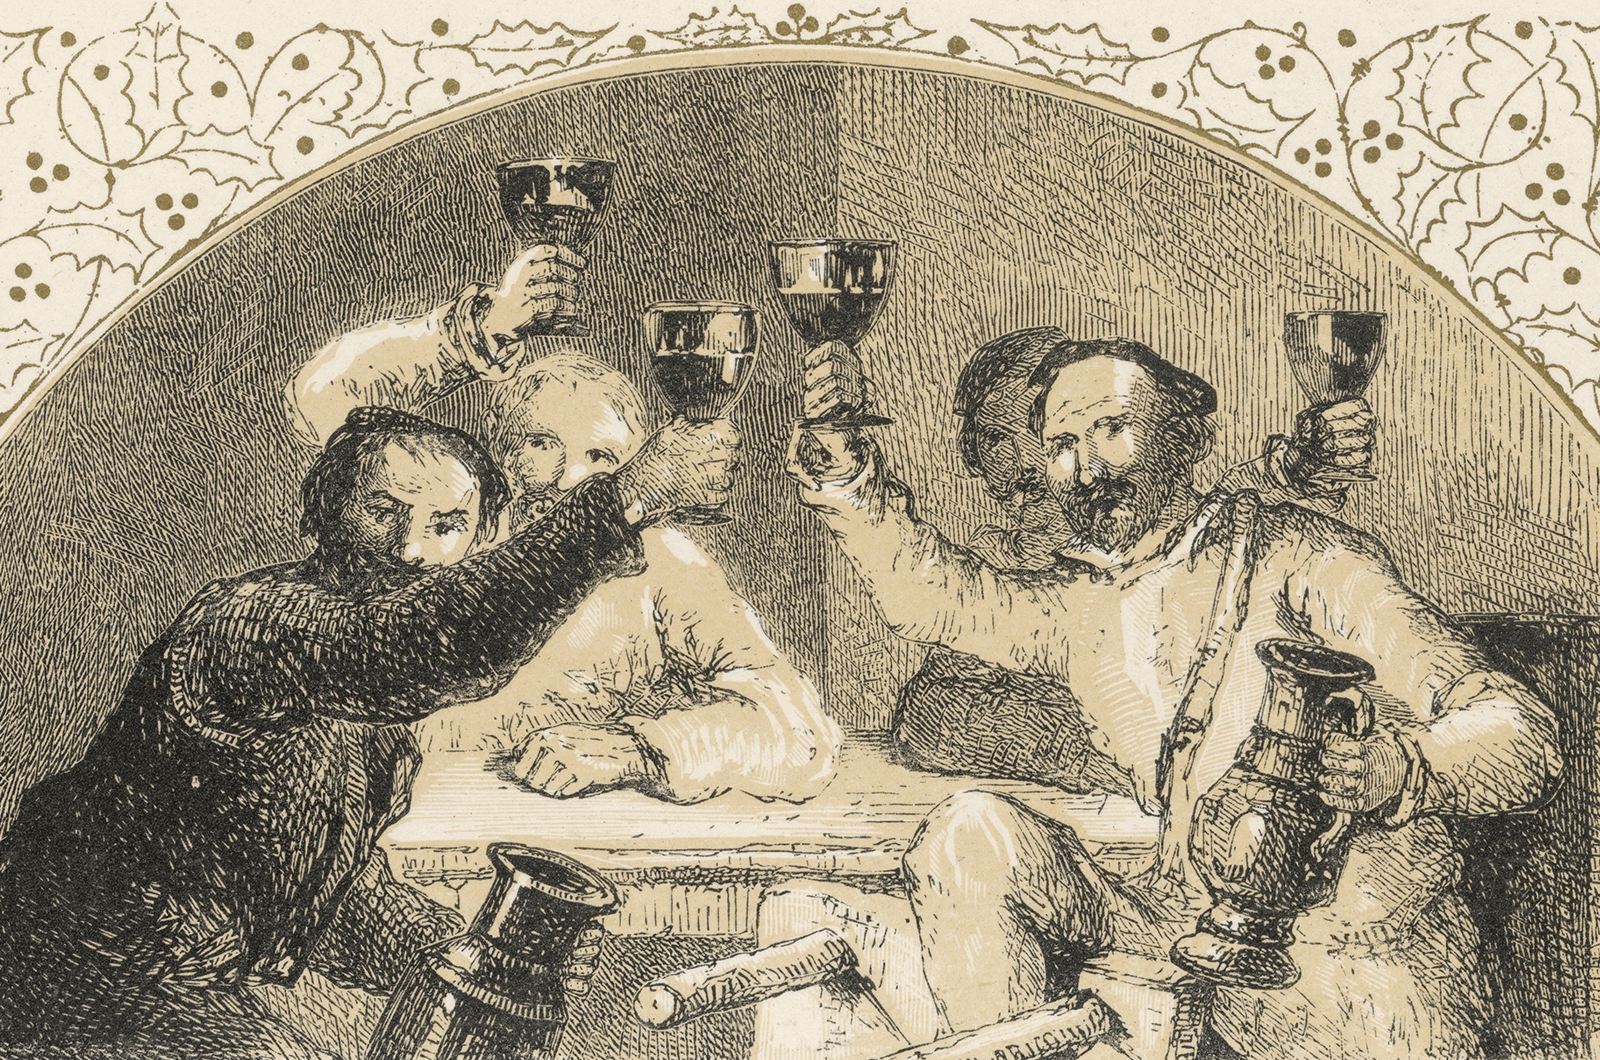 Men from 16th century toasting